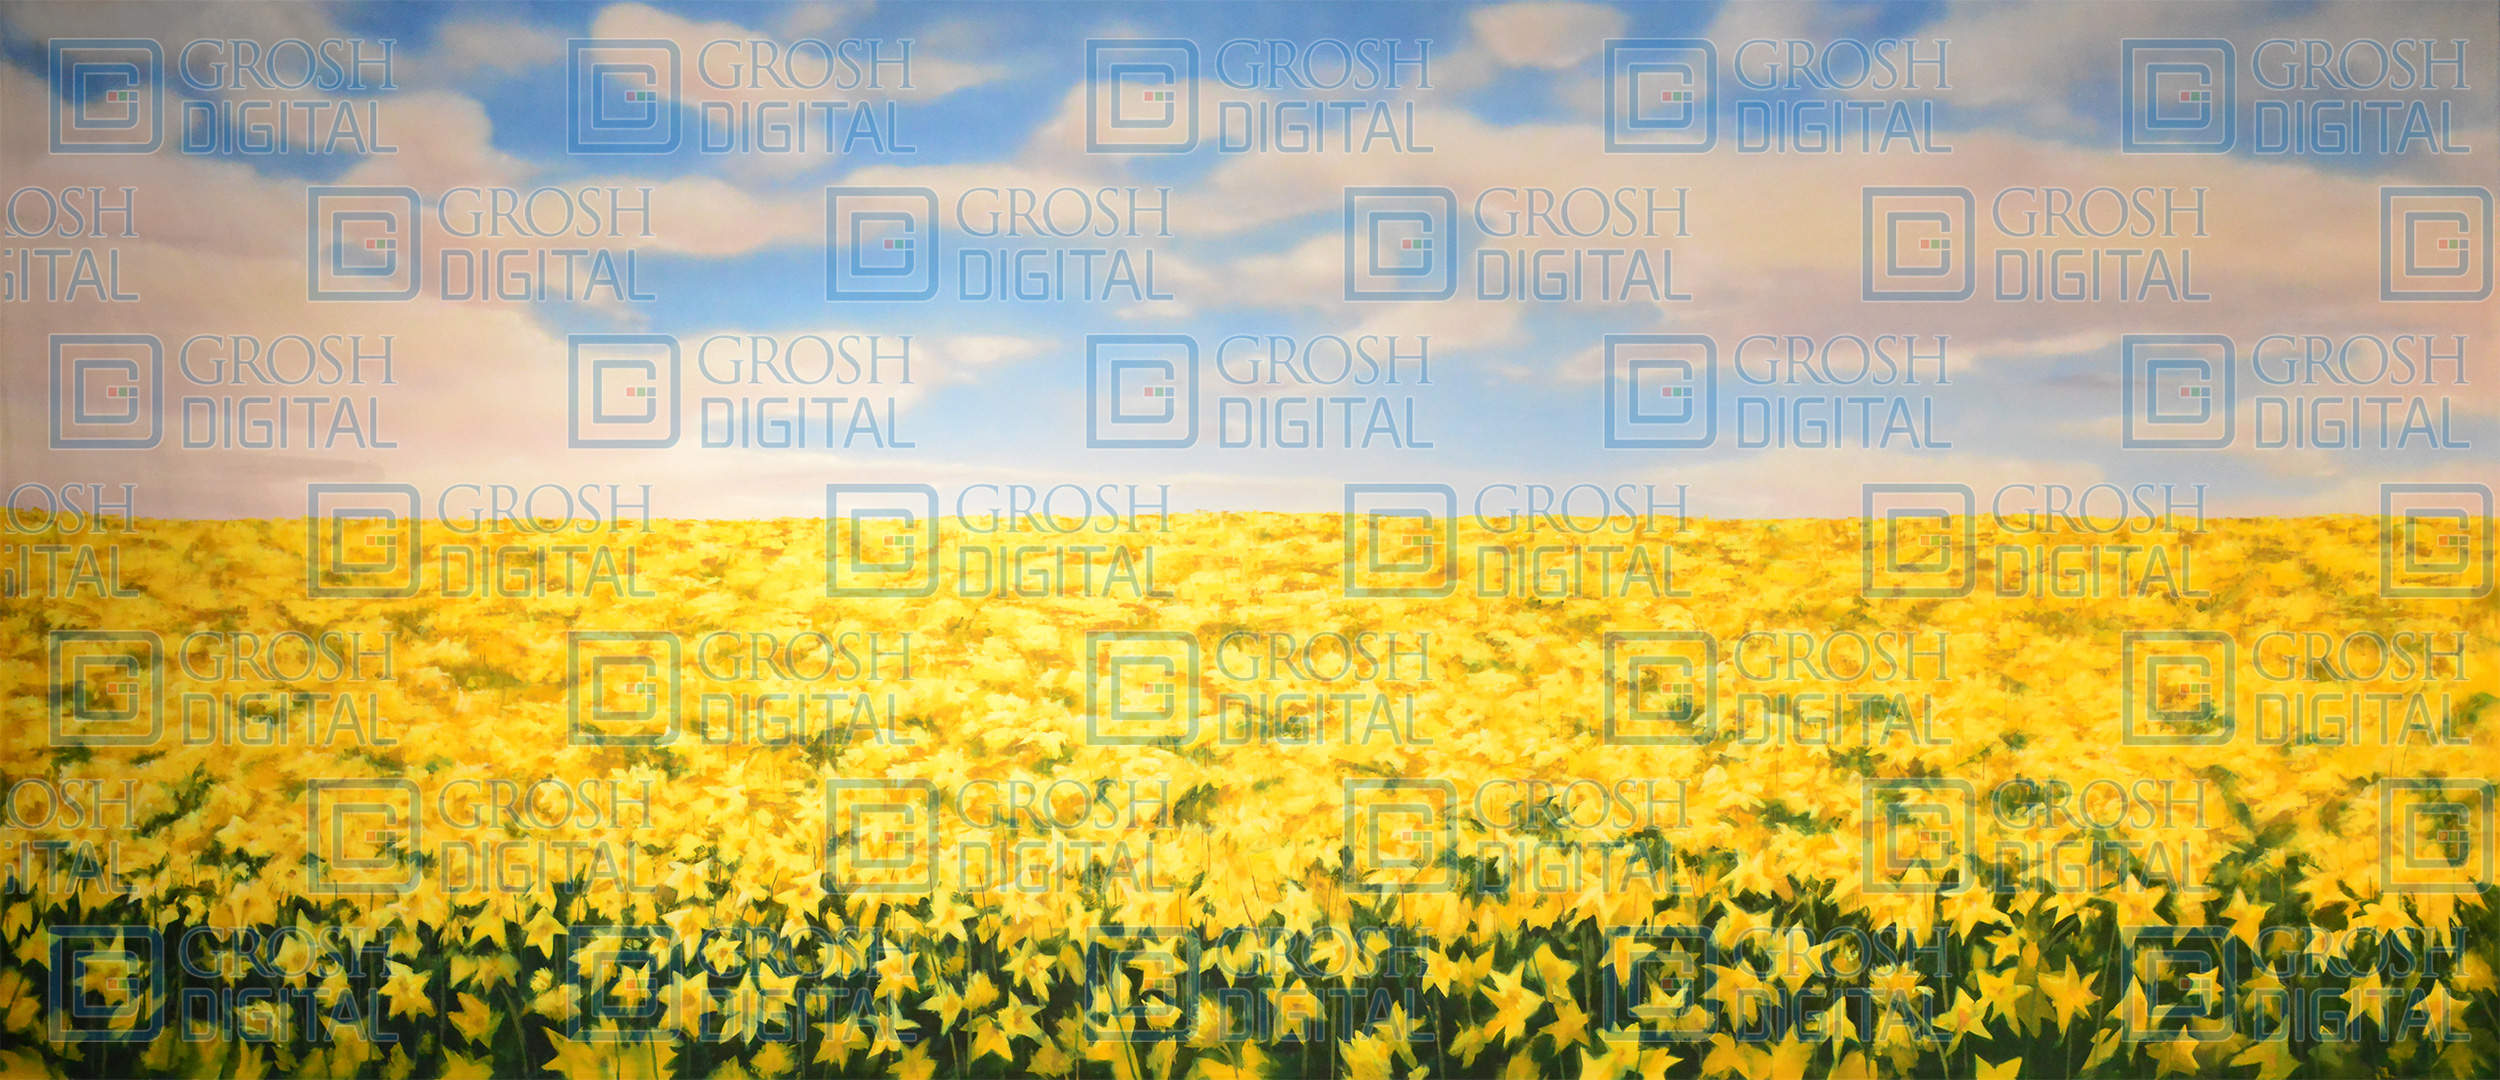 Daffodil Field Projected Backdrop for Beauty and the Beast, Big Fish, Cinderella, Gardens, Landscapes, Mary Poppins, Seussical, Shrek, Wizard of Oz